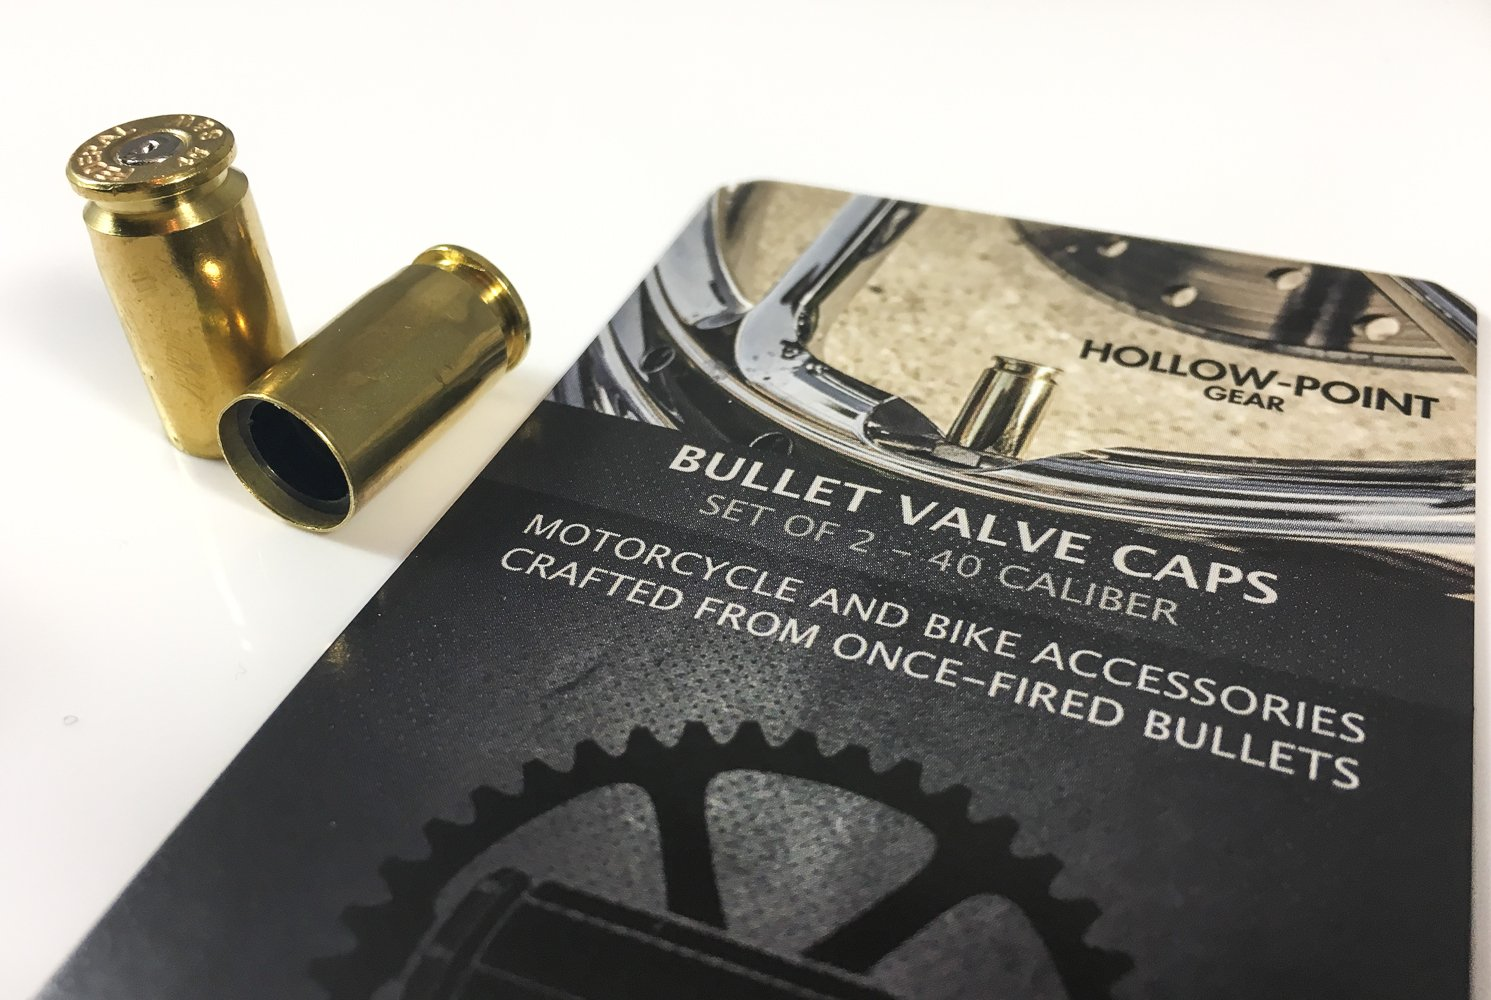 Set of 2 in Brass//Gold Hollow-Point Gear Bullet Bicycle Tire Valve Caps Authentic .40 Caliber Bullet Tire Caps for Bicycles and Motorcycles